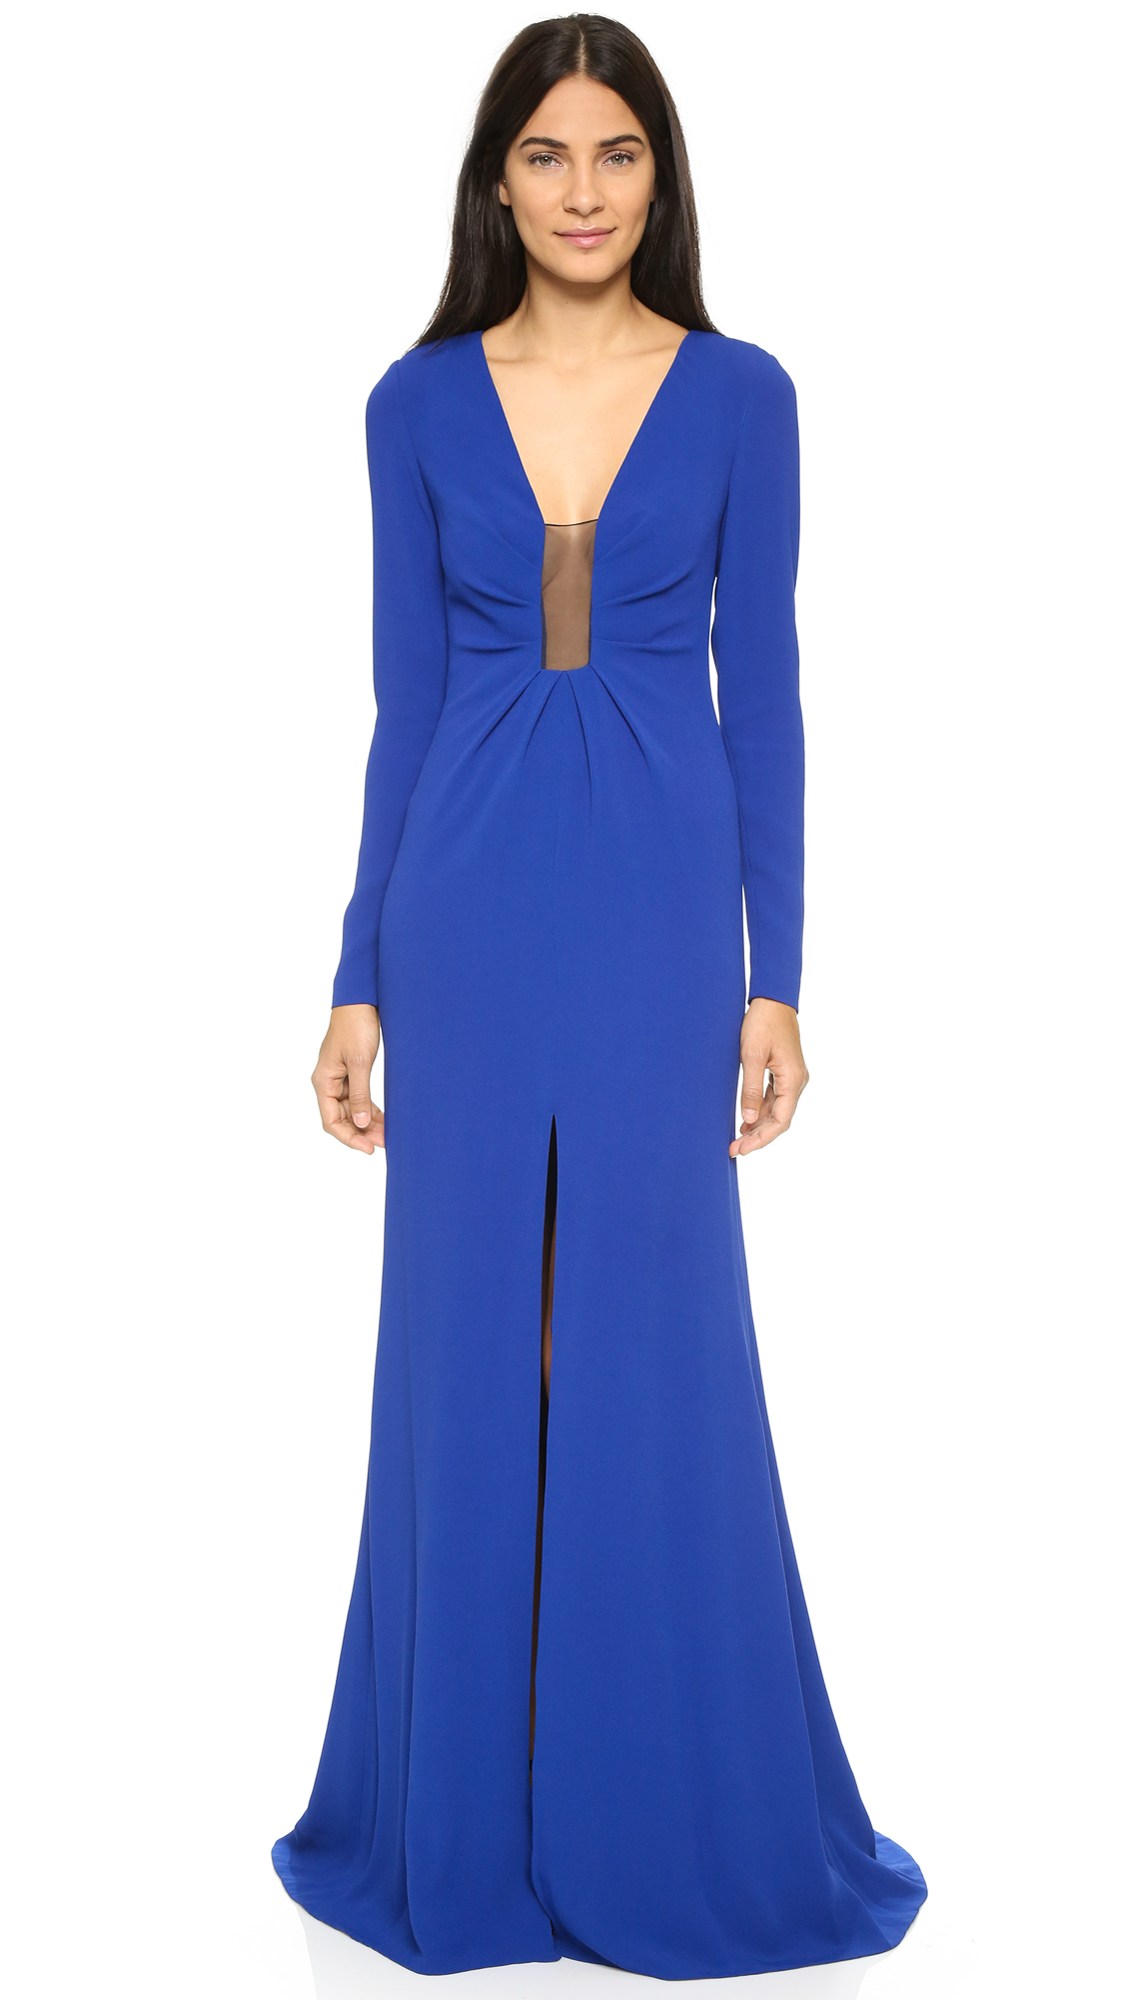 Thakoon Gown With Sheer Inset - Dark Blue at Shopbop